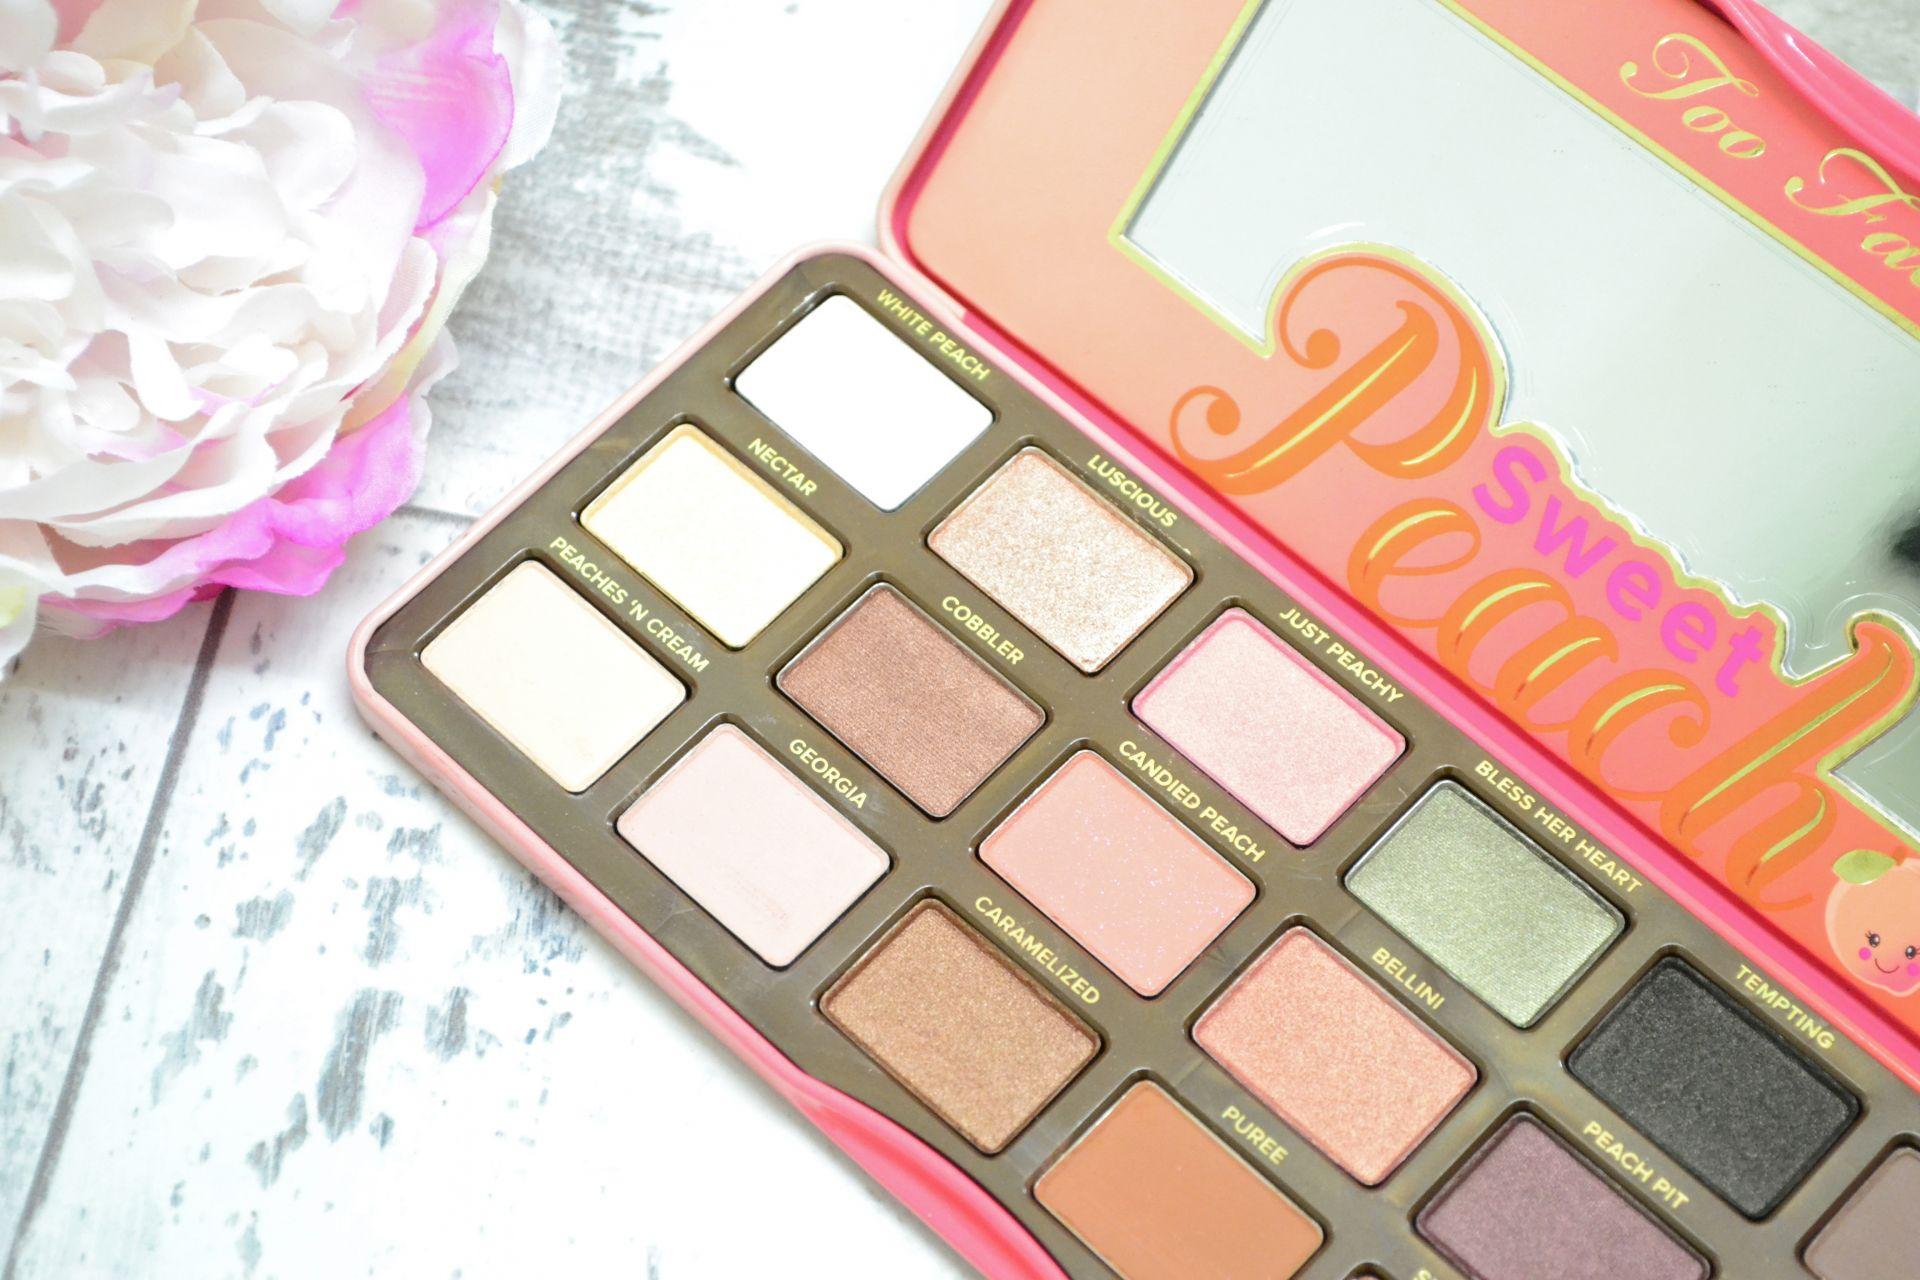 too-faced-sweet-peach-eyeshadow-palette-2018